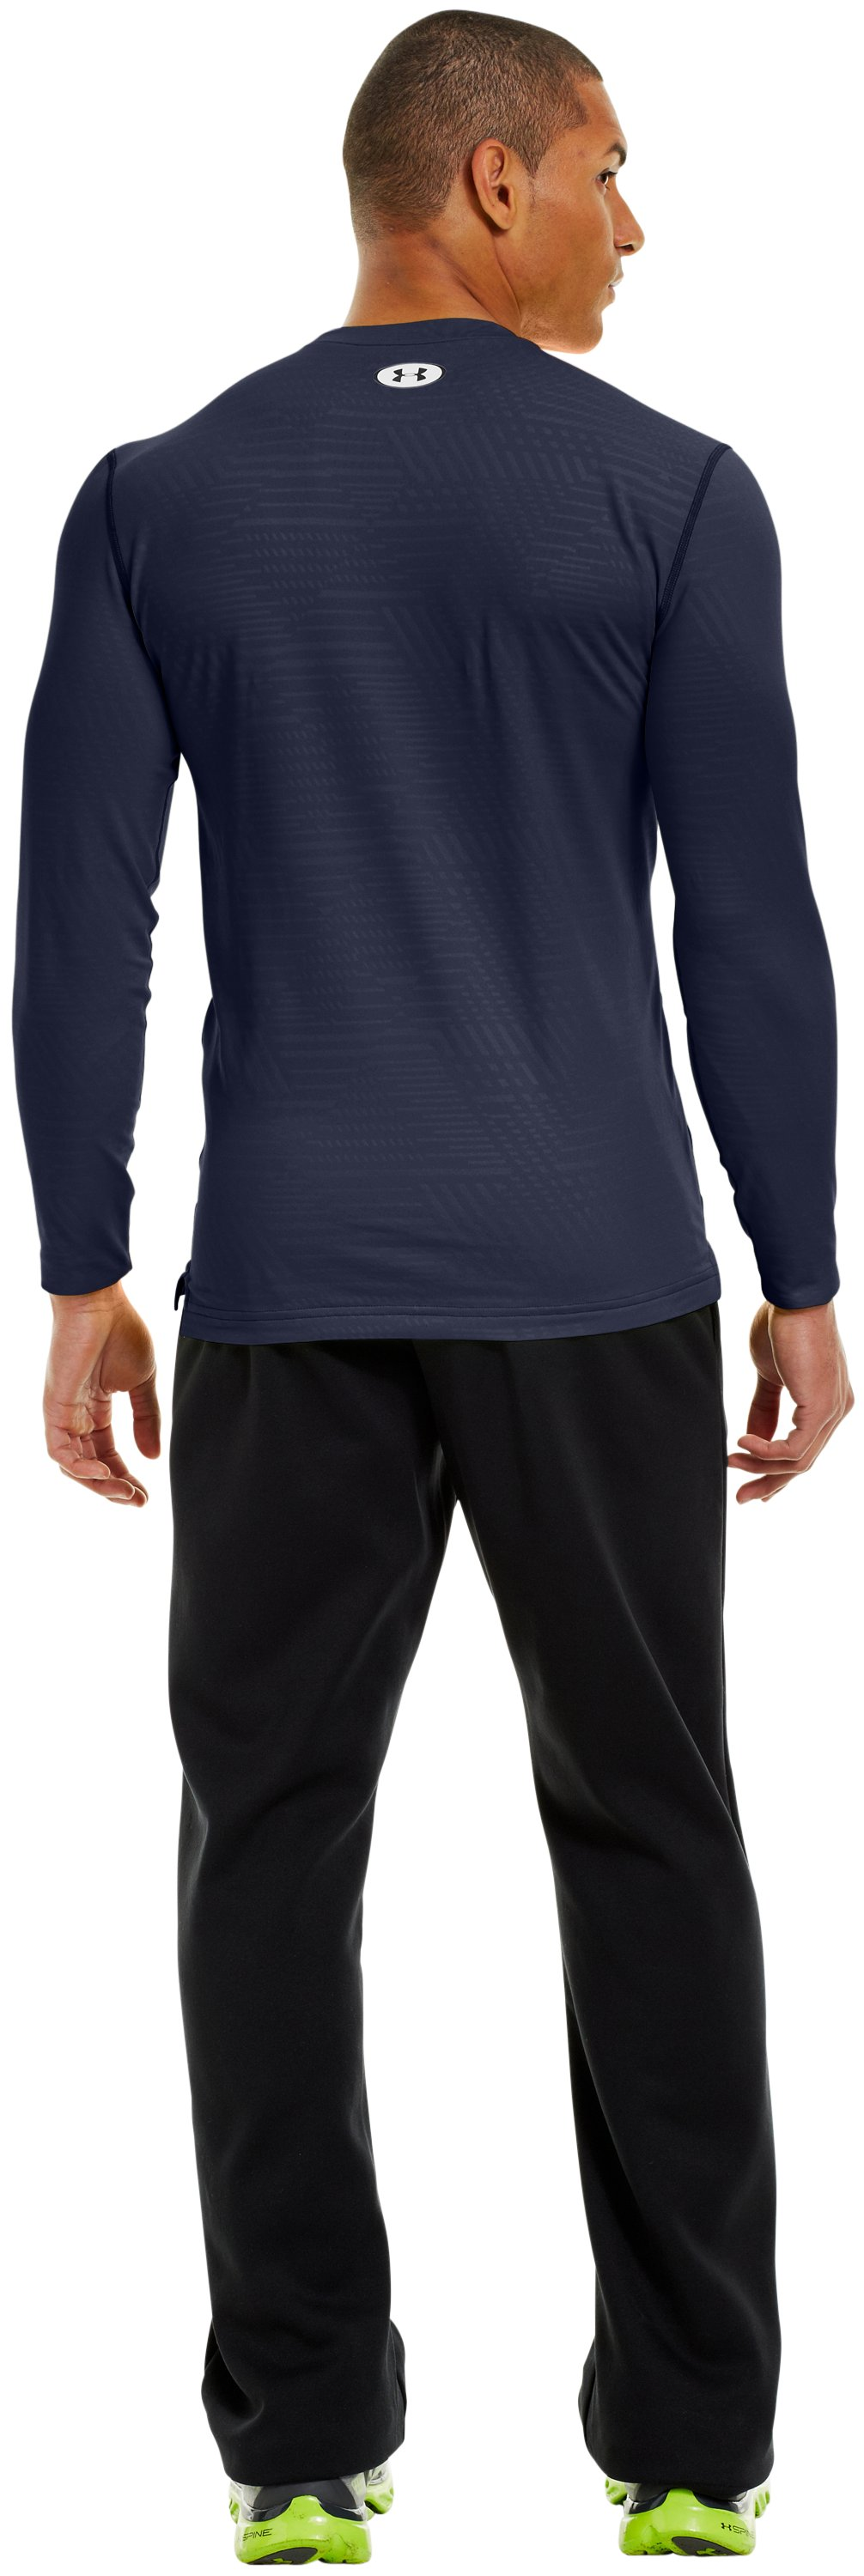 Men's ColdGear® Infrared Evo Printed Fitted Crew, Midnight Navy, Back